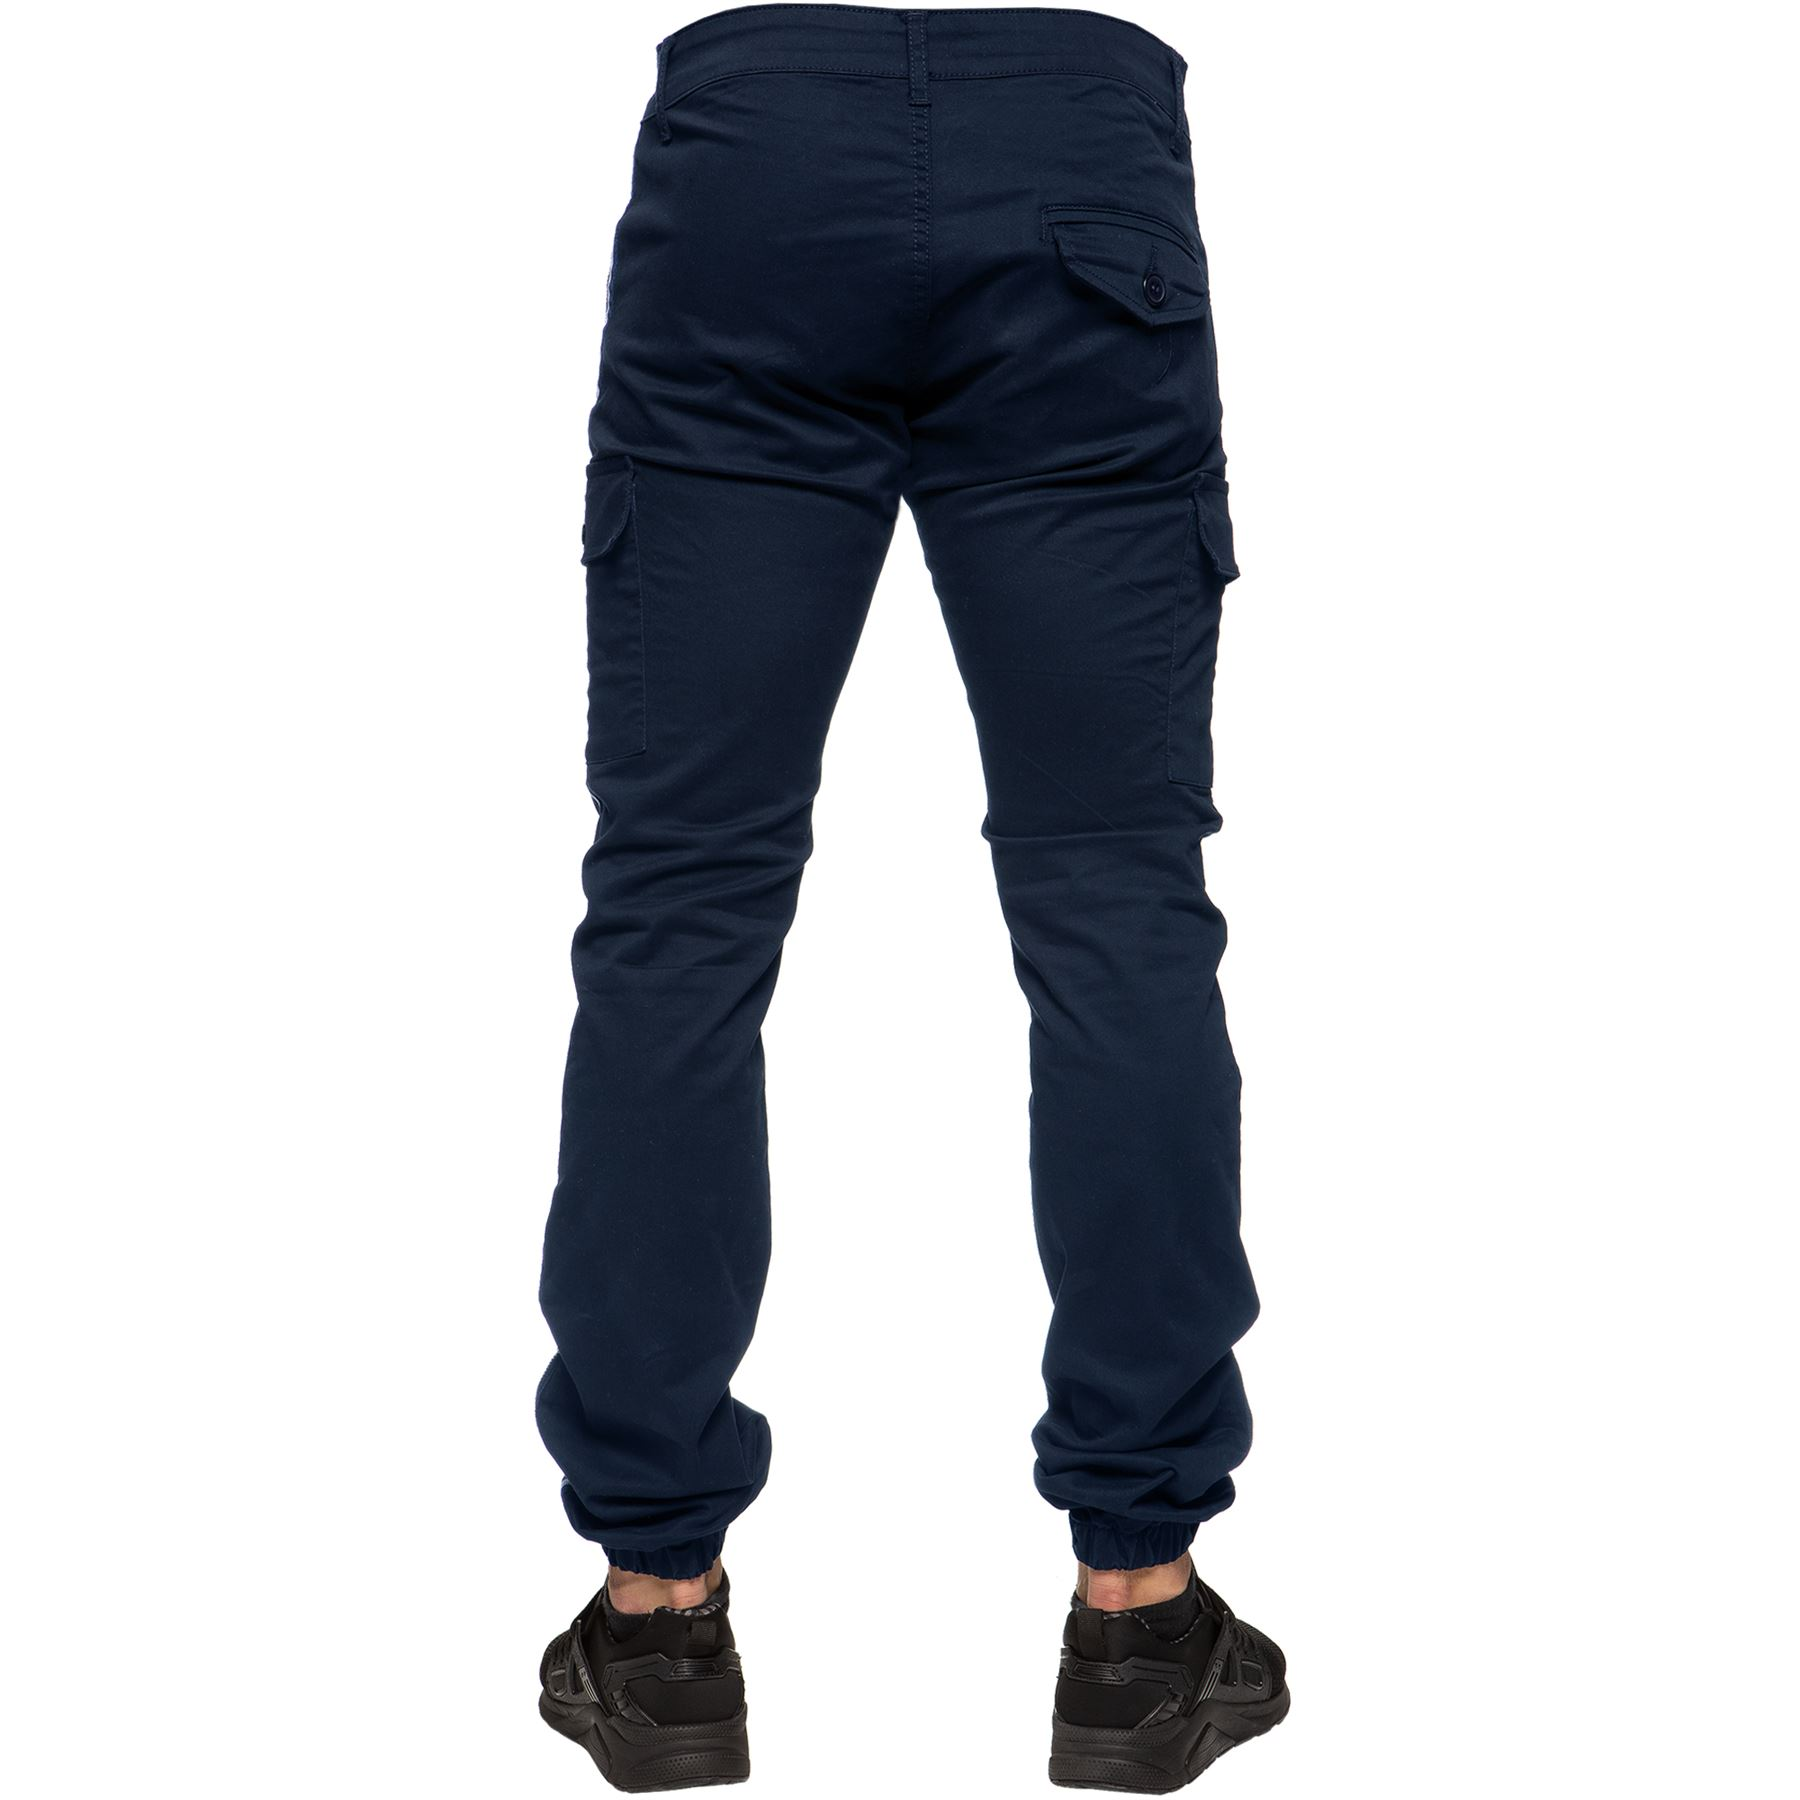 Enzo-Jeans-Mens-Combat-Trousers-Cargo-Chinos-Slim-Stretch-Cuffed-Joggers-Pants thumbnail 10